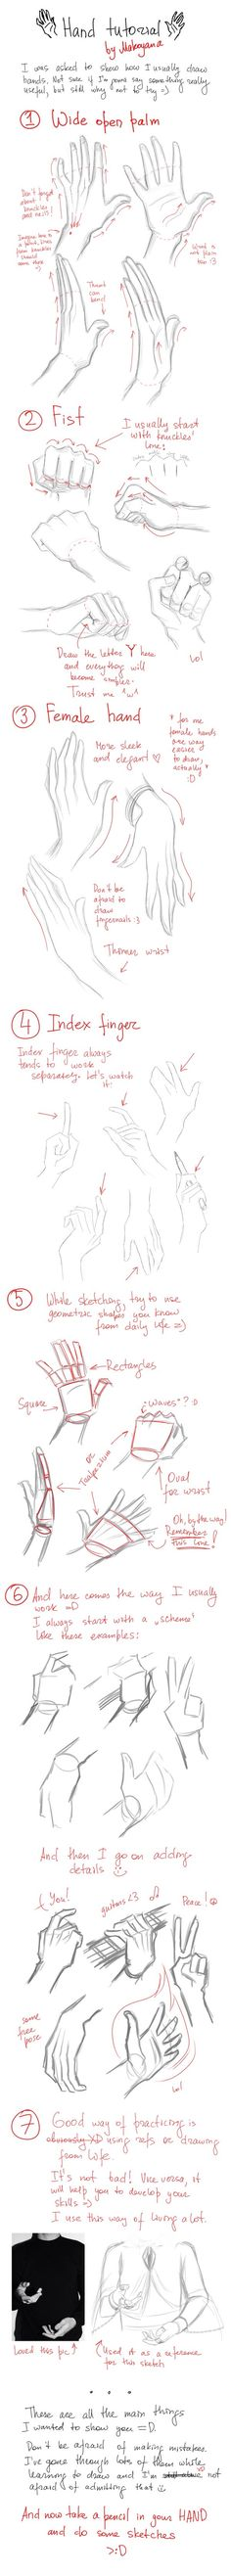 Hände zeichnen lernen Hands tutorial (Hands are the worst, this will definitely come in handy. No pun intended) Drawing Lessons, Drawing Techniques, Drawing Tutorials, Drawing Tips, Art Tutorials, Drawing Sketches, Painting & Drawing, Art Drawings, Drawing Hands